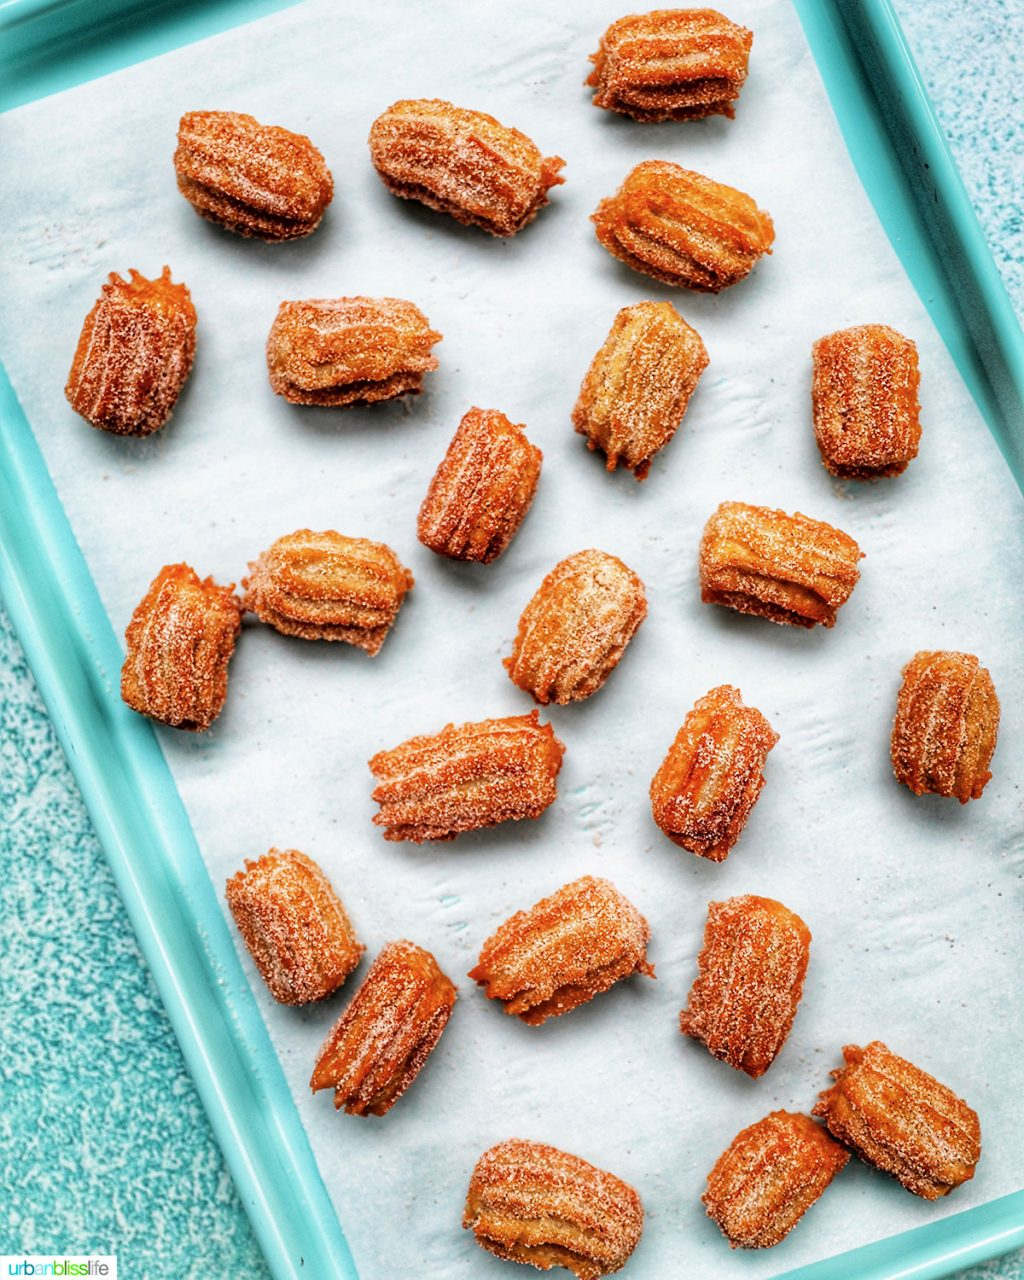 churros sprinkled on a baking tray